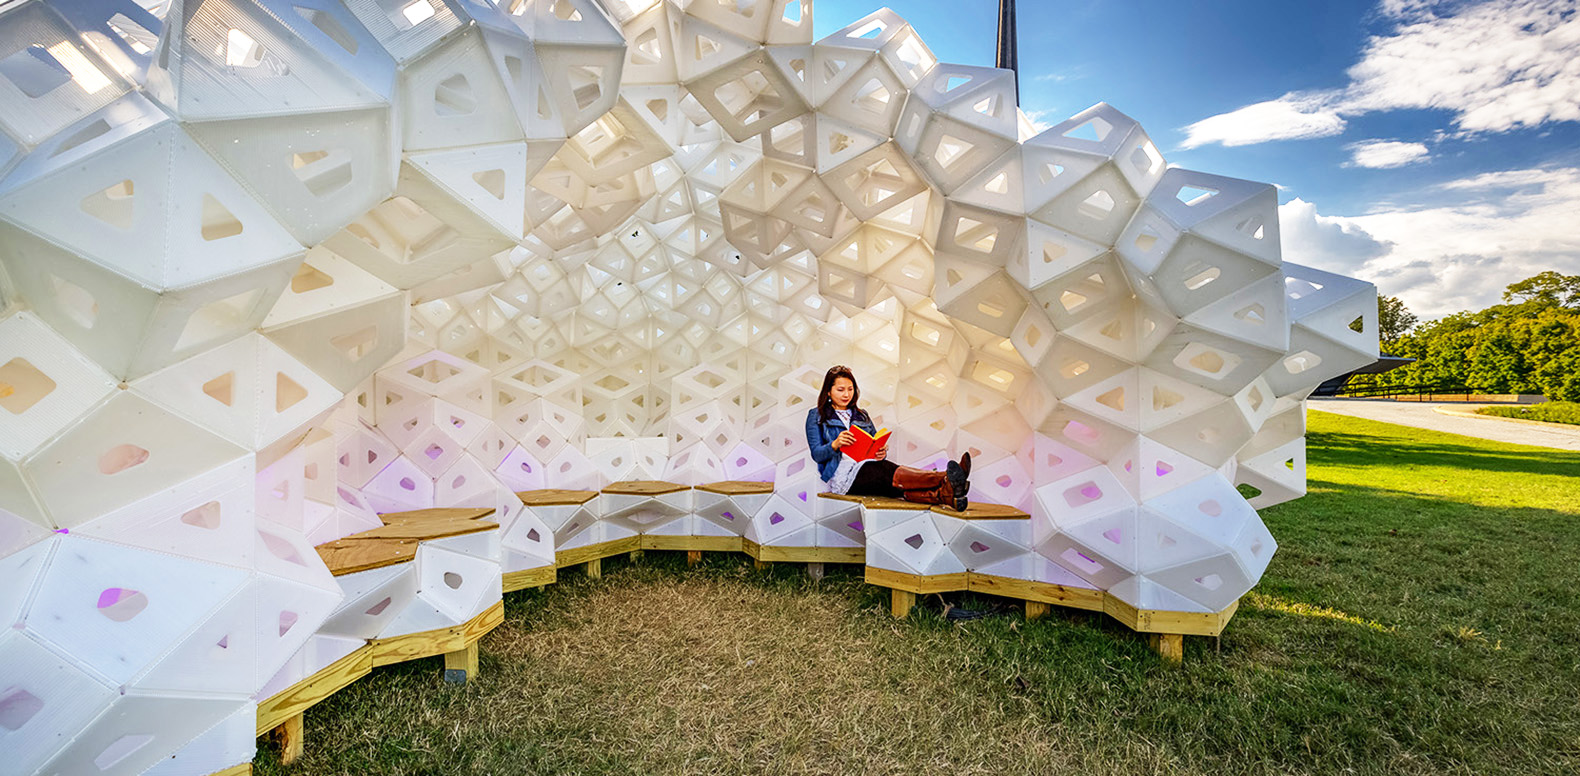 spectacular origami pavilion made of recycled plastic pops up in